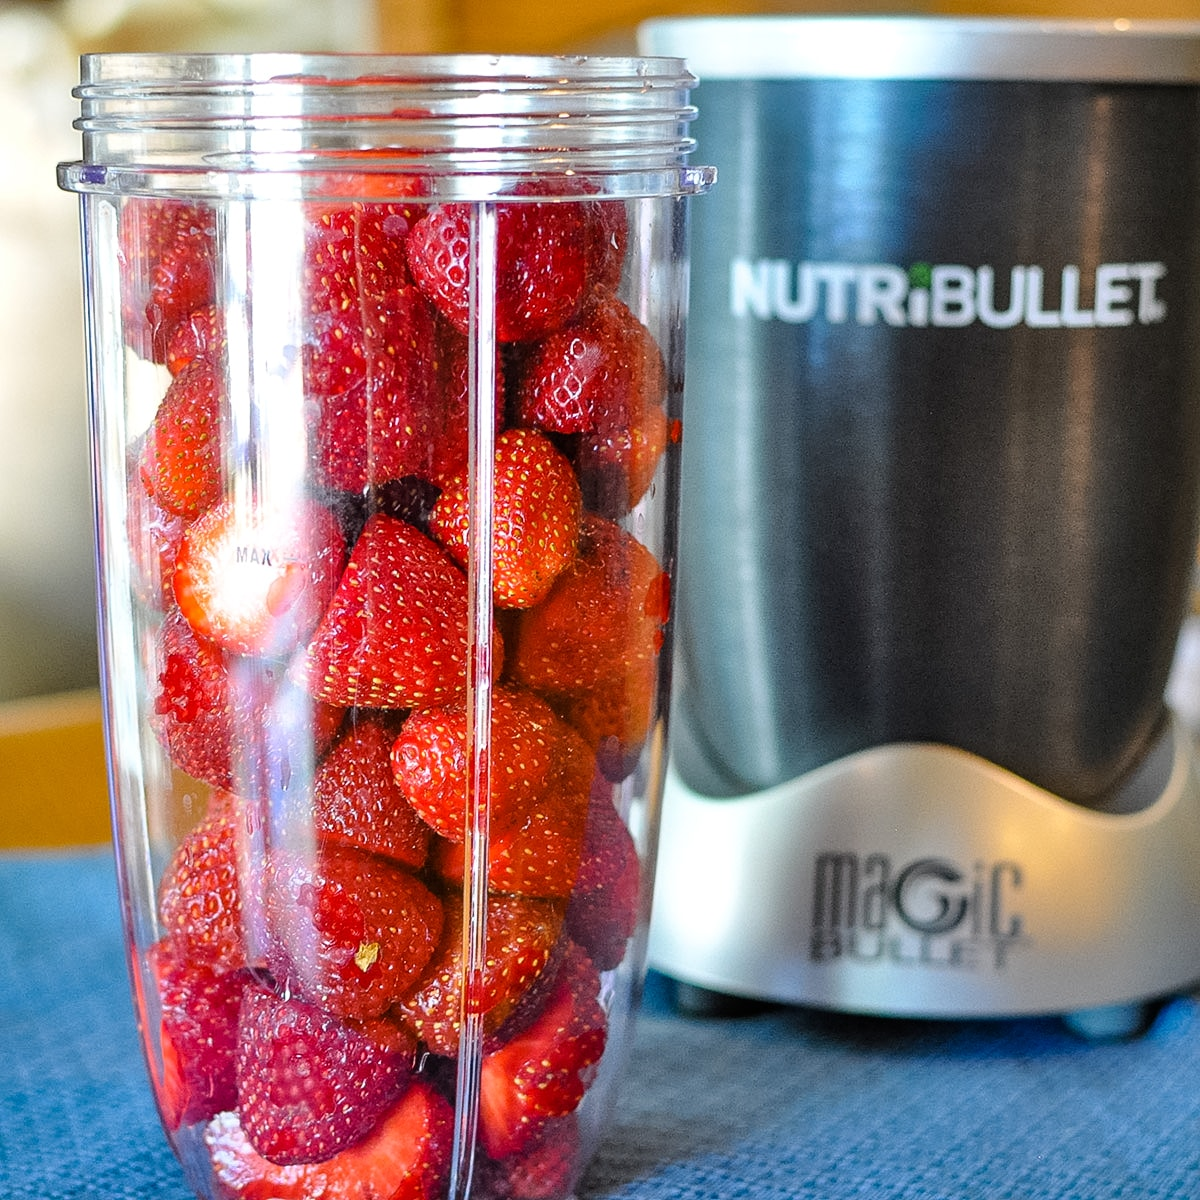 a nutri bullet canister full of fresh strawberries before being pureed